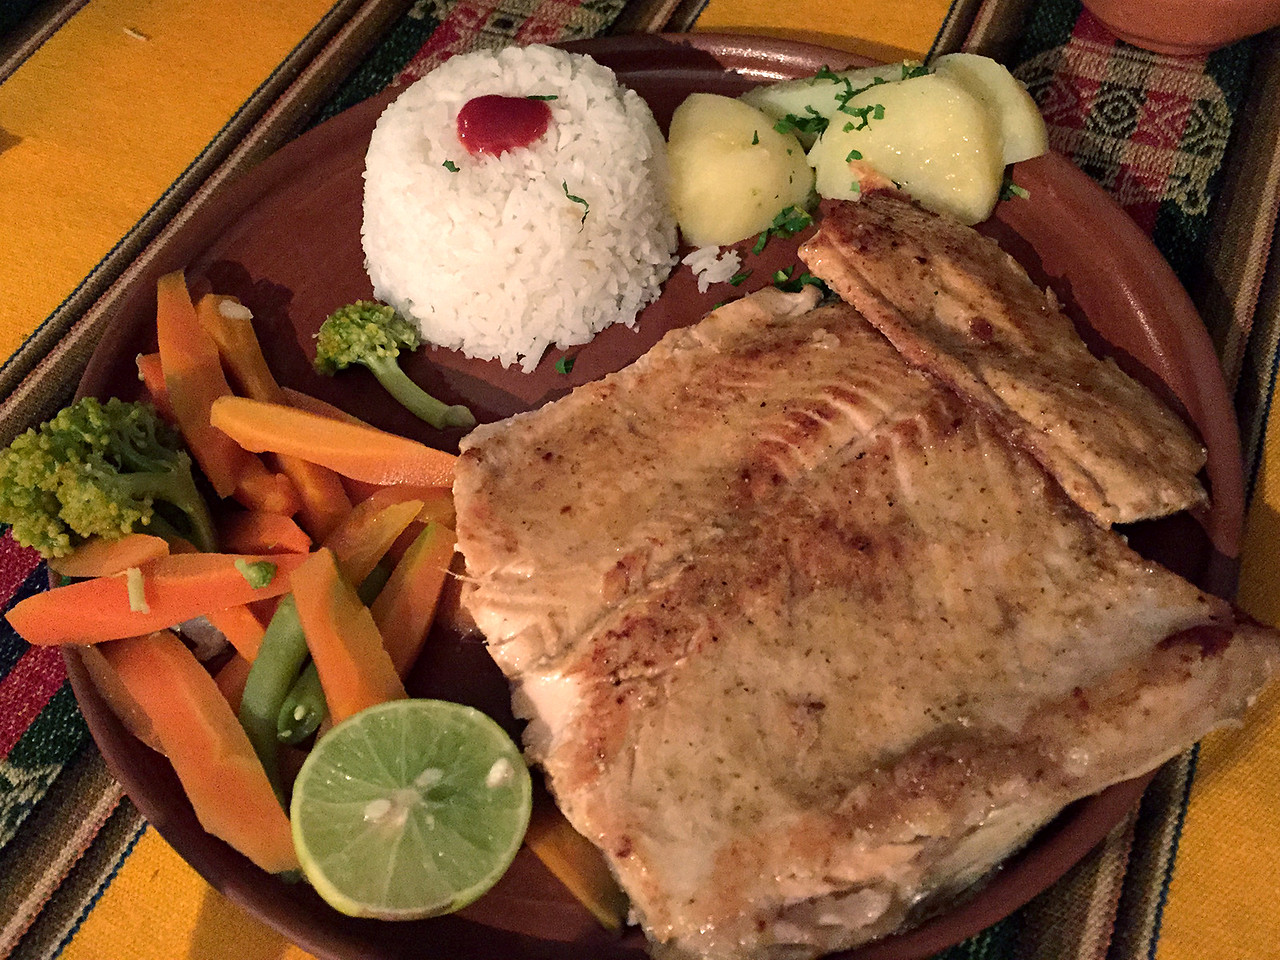 Dinner of grilled trout on Isla del Sol, lake Titicaca, Bolivia